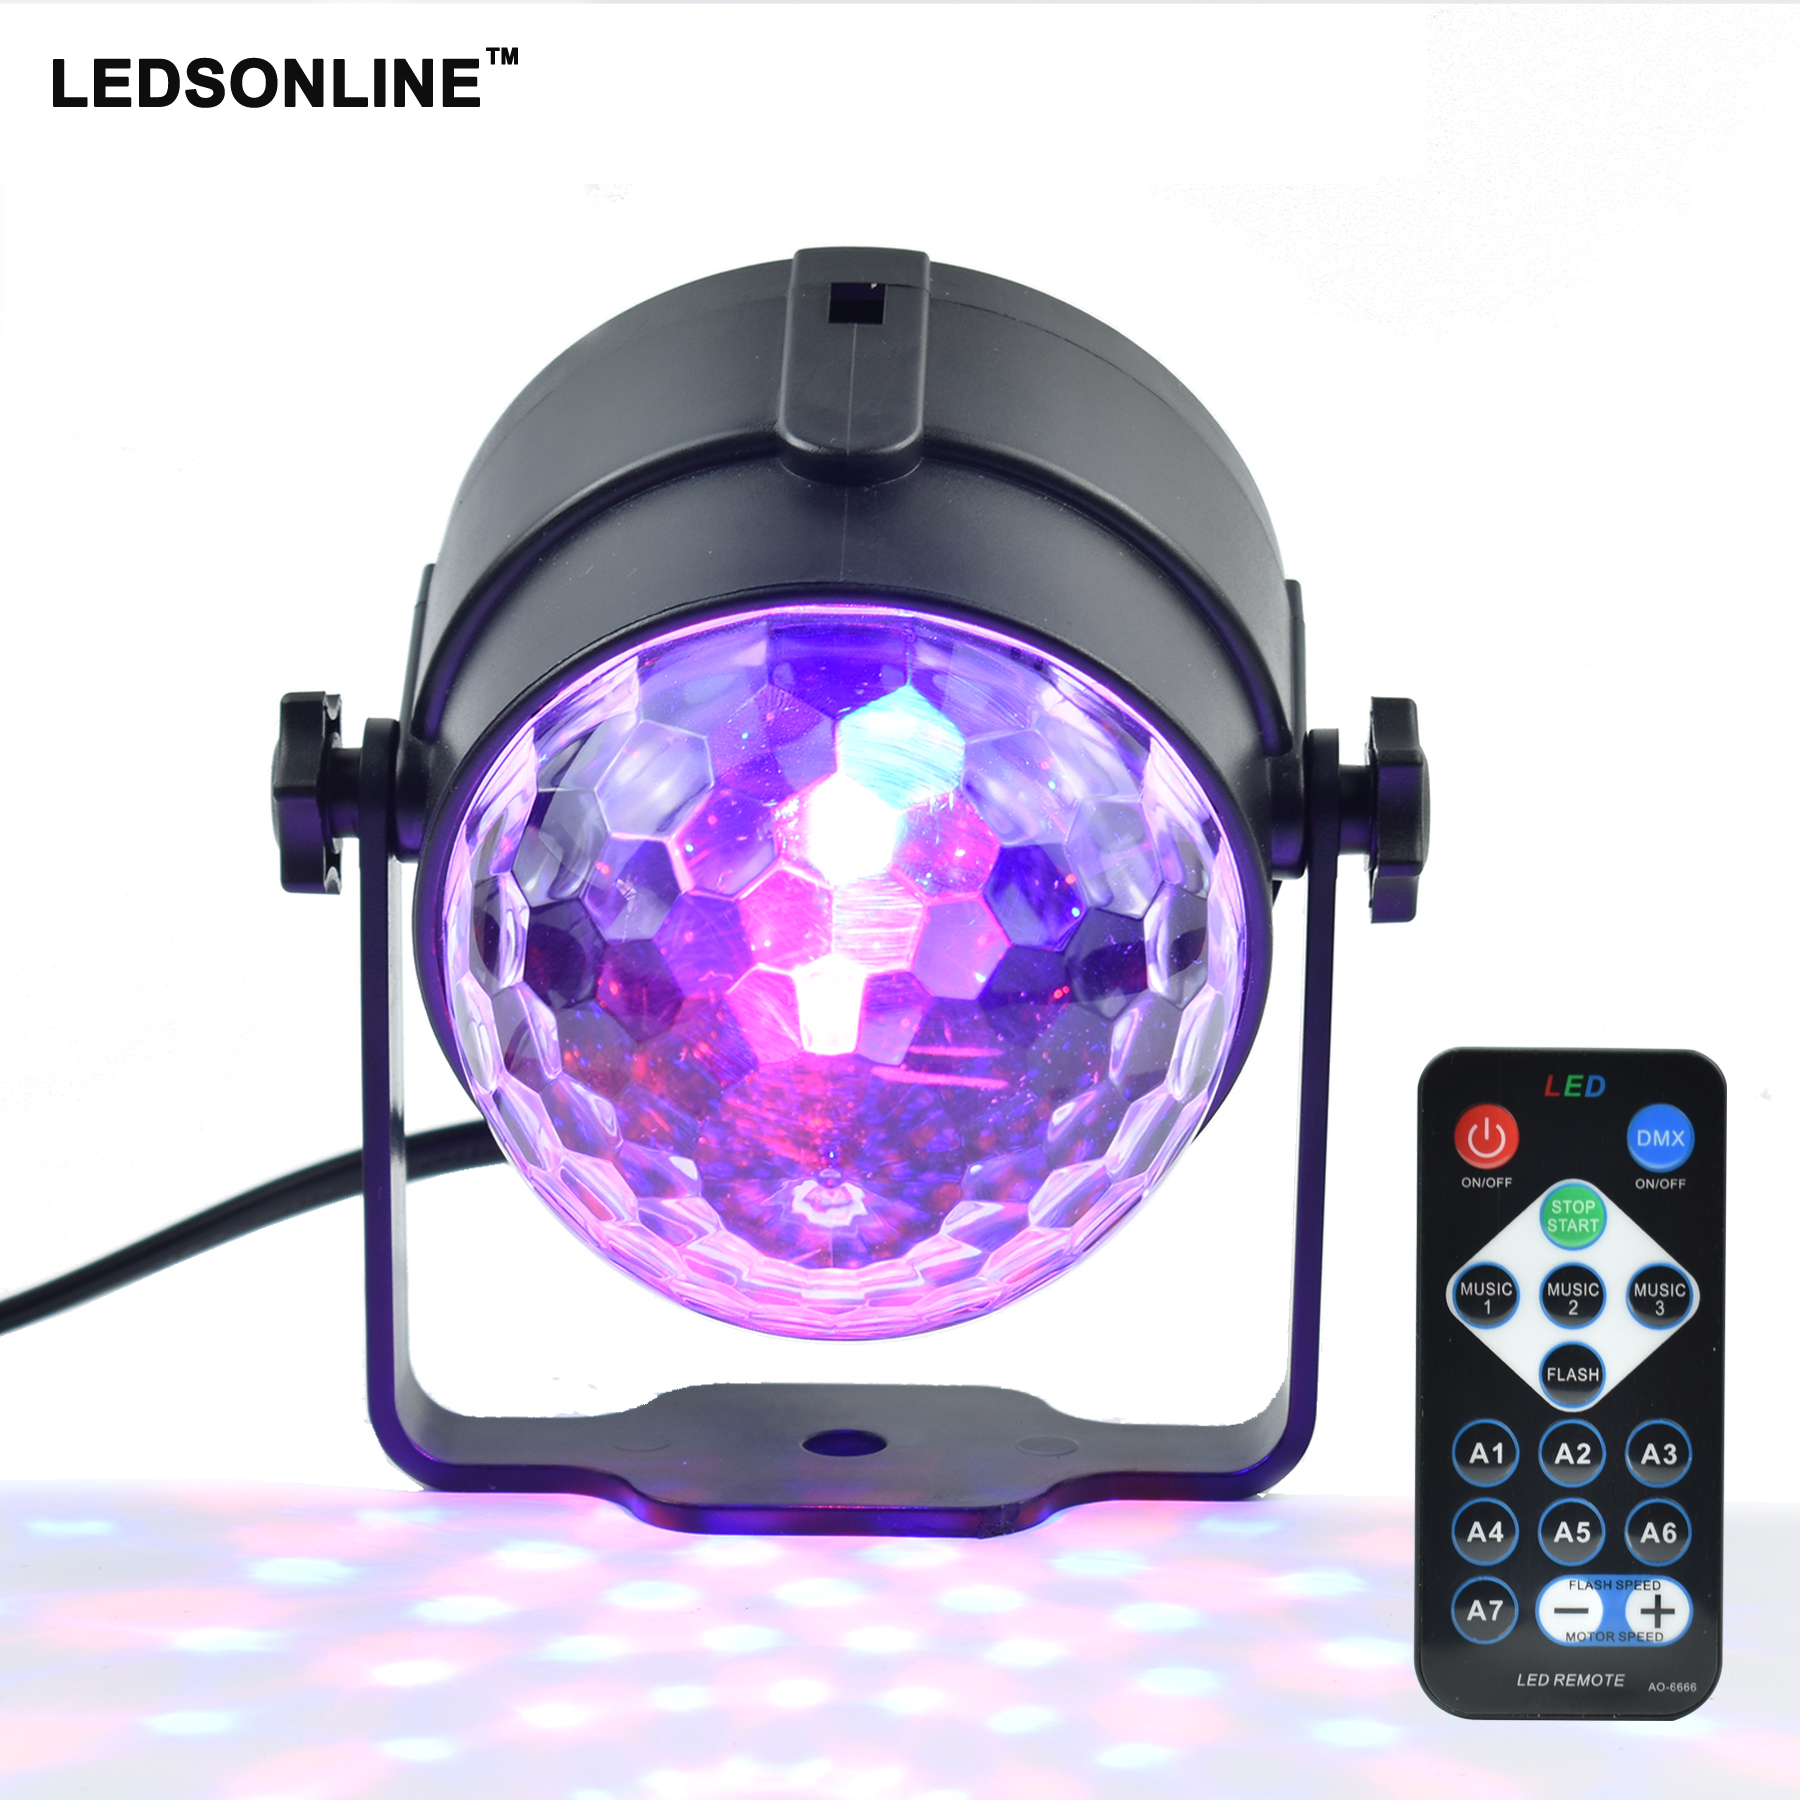 Mini RGB 3W Crystal Magic Ball Led Stage Lamp DJ KTV Disco Laser Light Party Lights Sound IR Remote Control Christmas Projector transctego 9 colors 27w crystal magic ball led stage lamp 21 mode disco laser light party lights sound control dmx lumiere laser